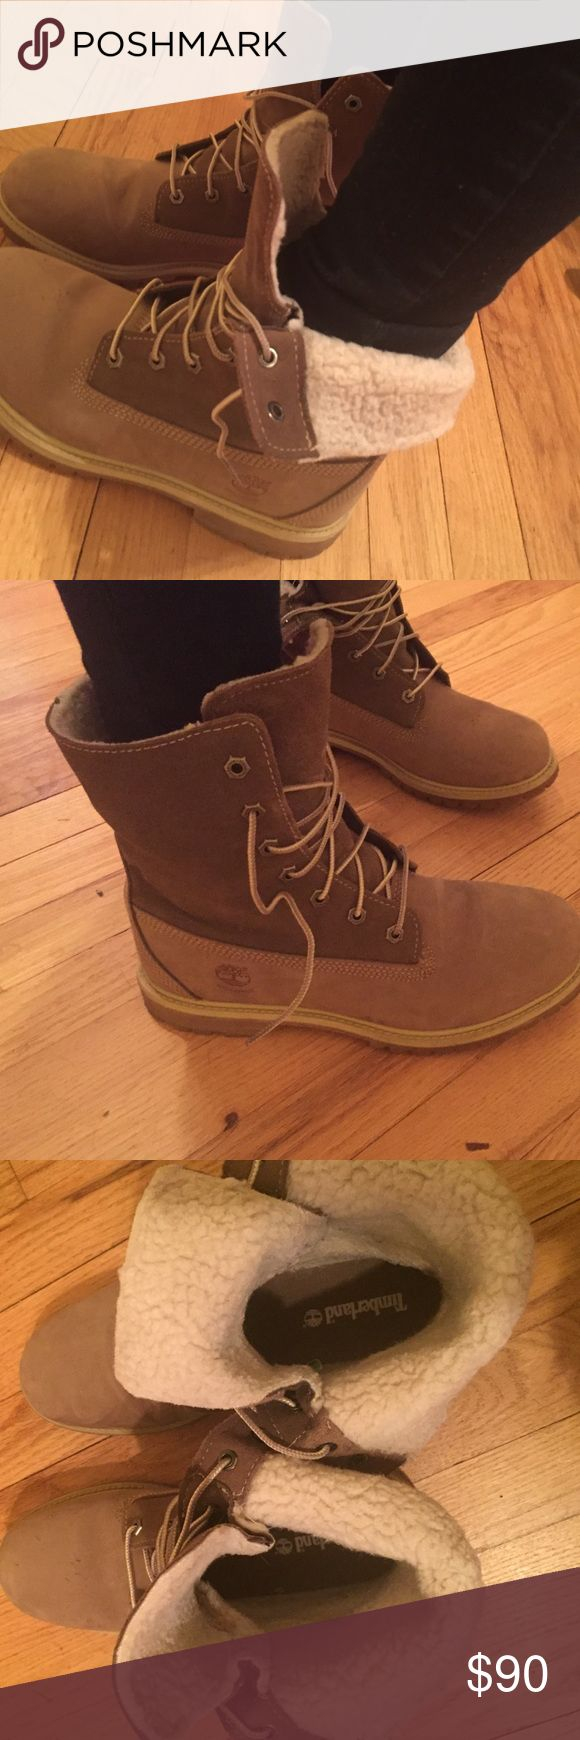 Womens timberland boots Womens timberland authentic teddy boot. Fleece-lined fold-down style. Some signs of wear- 4 small scratches on top of left shoe. Bottom treads are not worn down at all. Great sturdy, cute, warm boots! Size 9M, color Taupe. Timberland Shoes Lace Up Boots